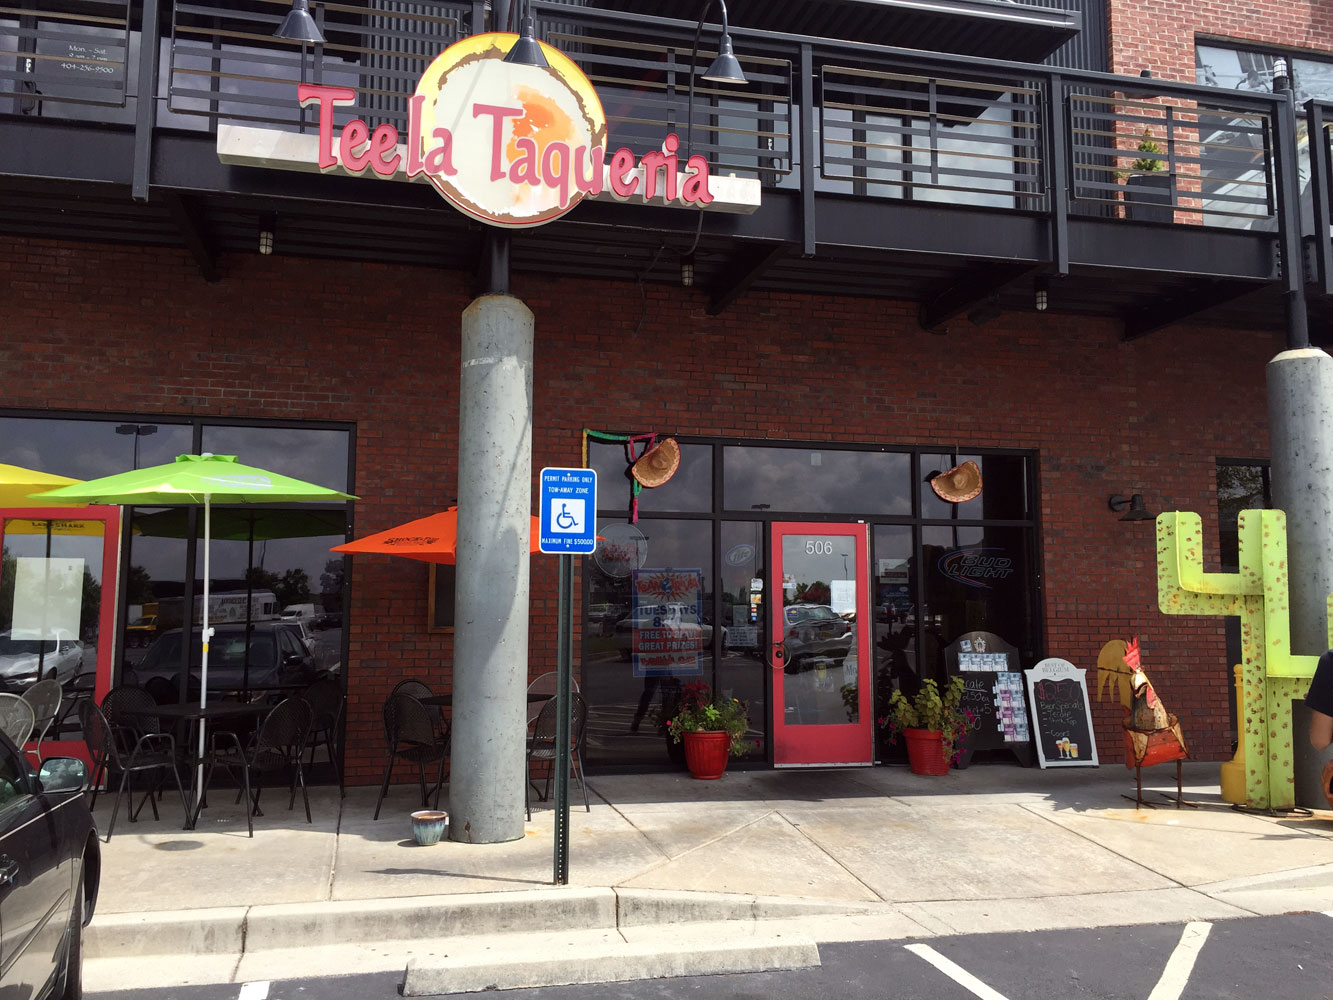 independent restaurant review teela taqueria sandy springs ga teela belongs to the group of nuevo or fusion mex style restaurants you ll in atlanta the object is to create flavor blends and contrasts using unique